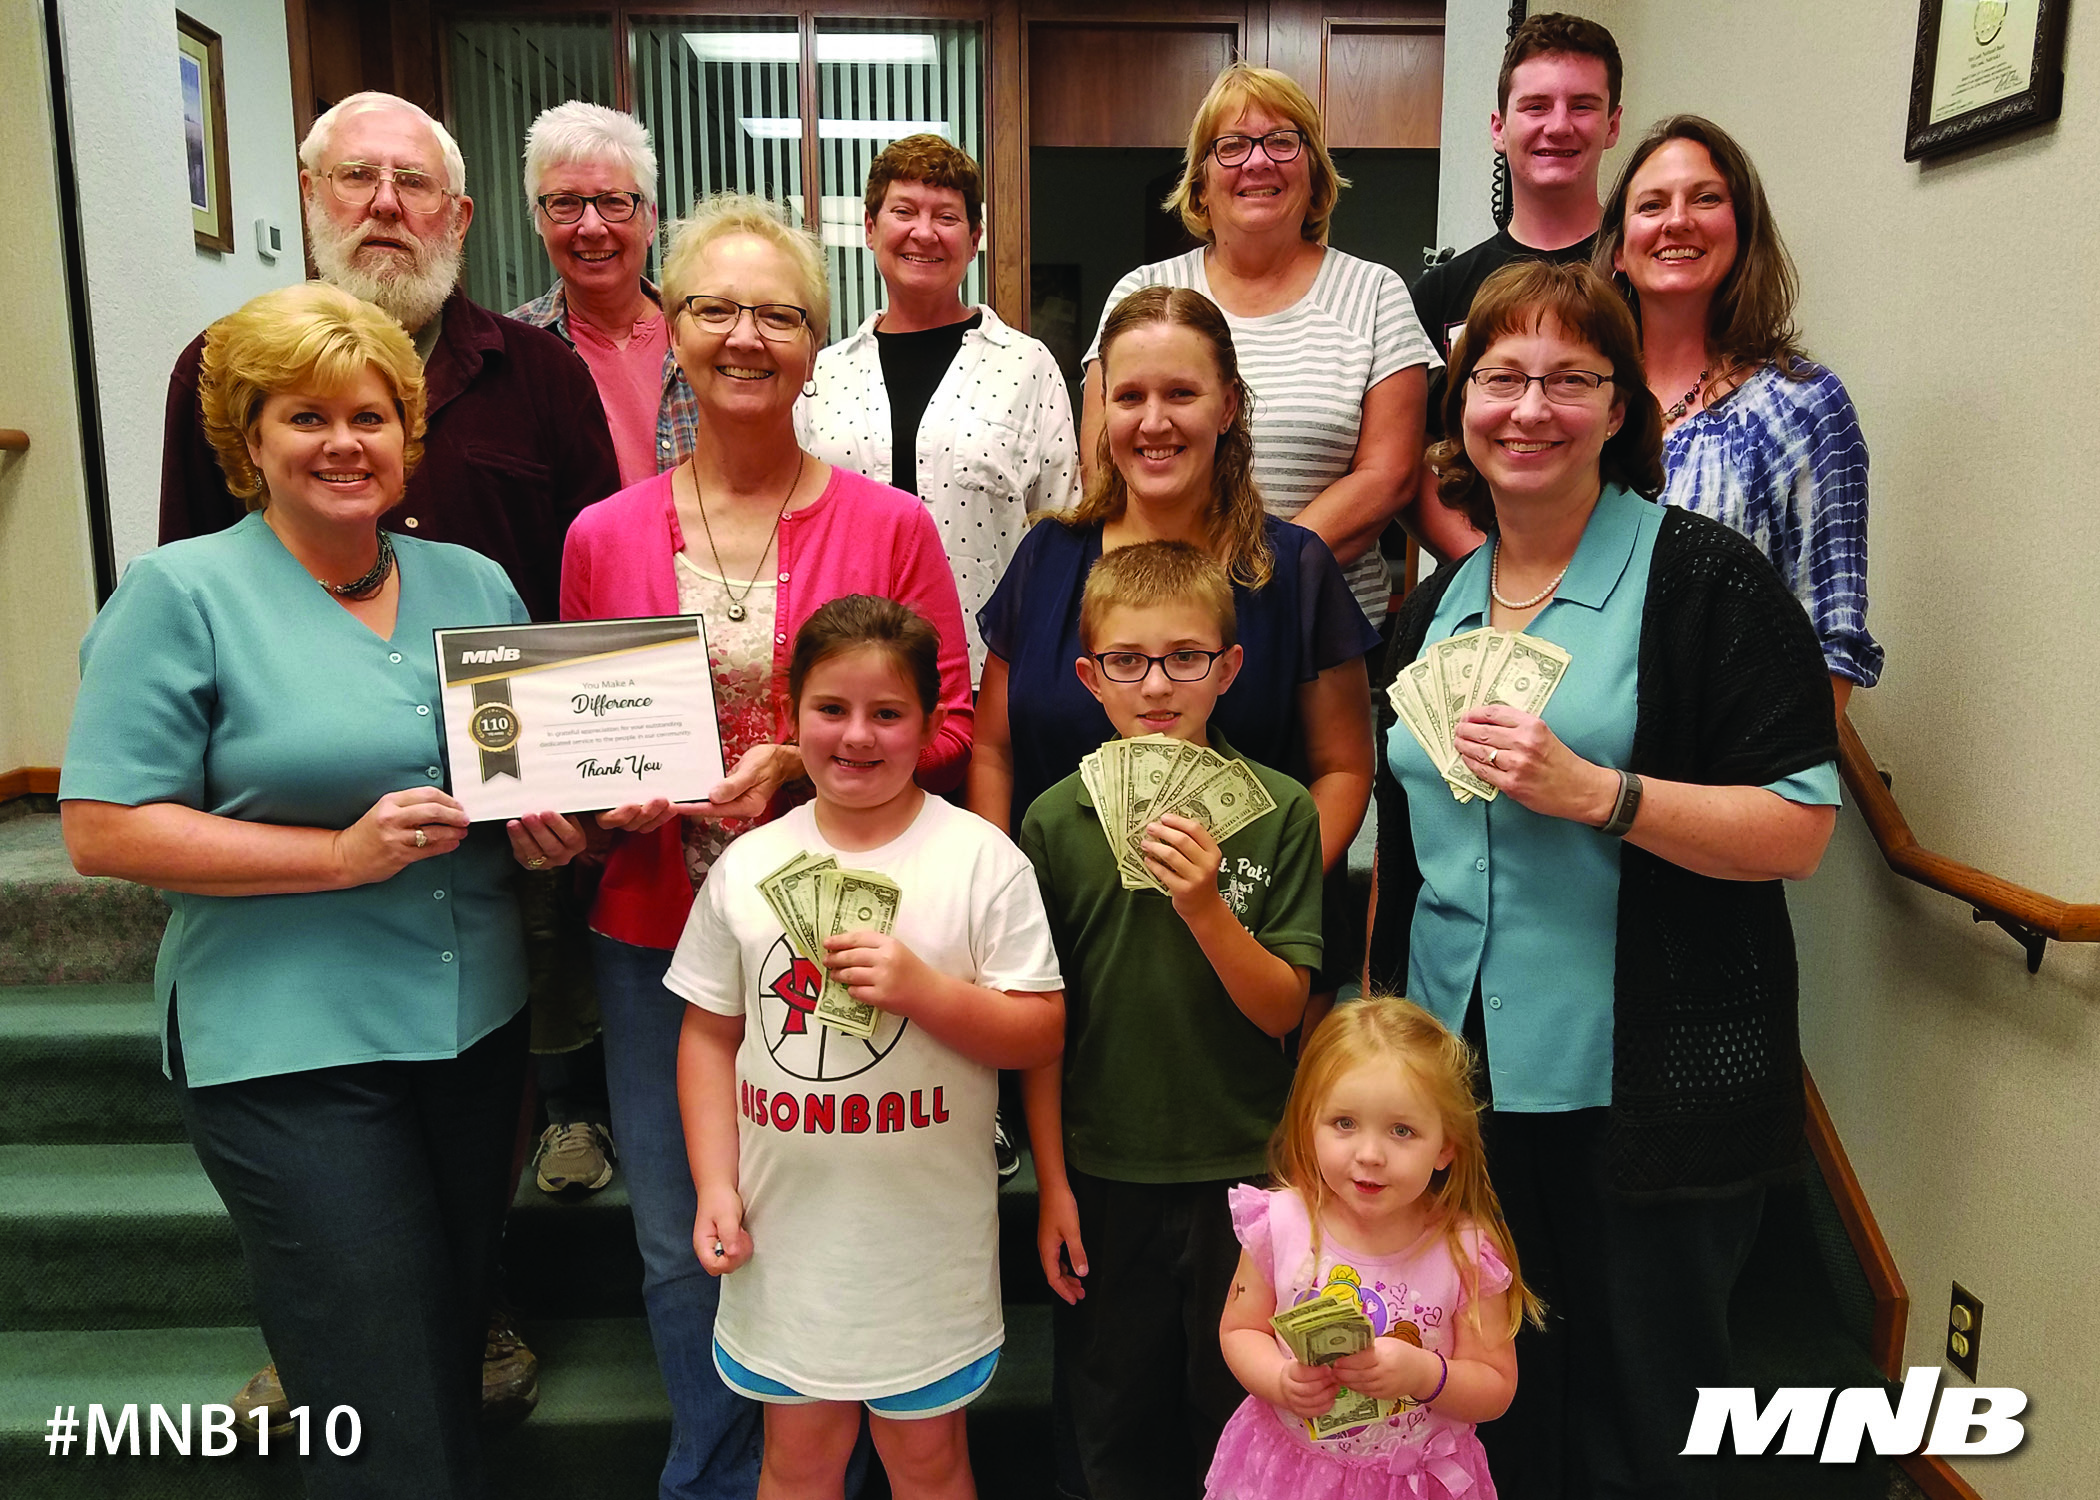 MNB presents $110 donation to The Thinkery of Southwest Nebraska